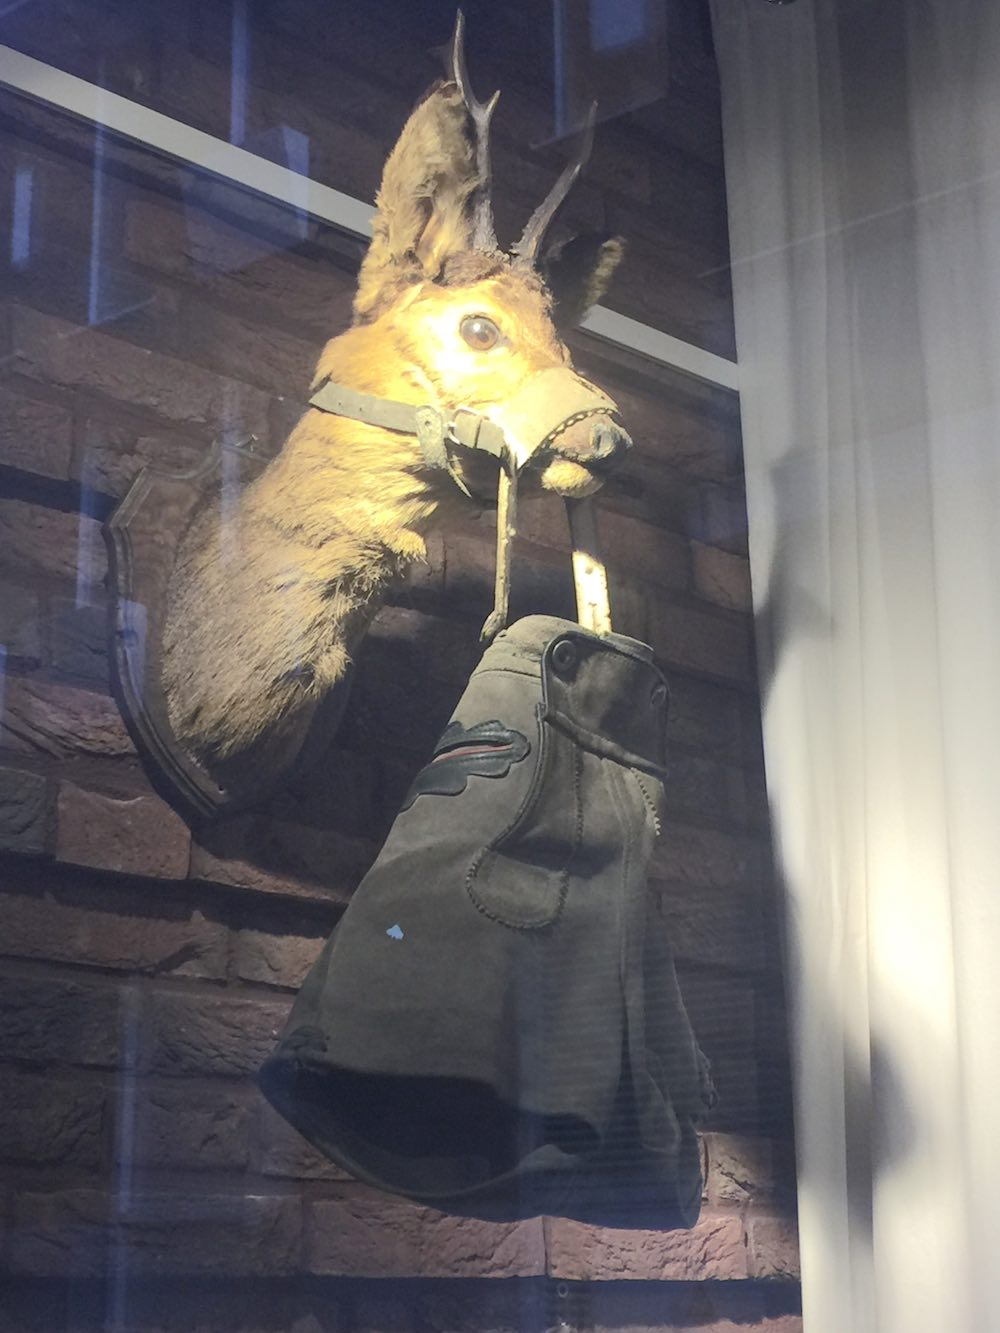 Deer head with lederhosen at Stadskunstkamer Haarlem |curlytraveller.com